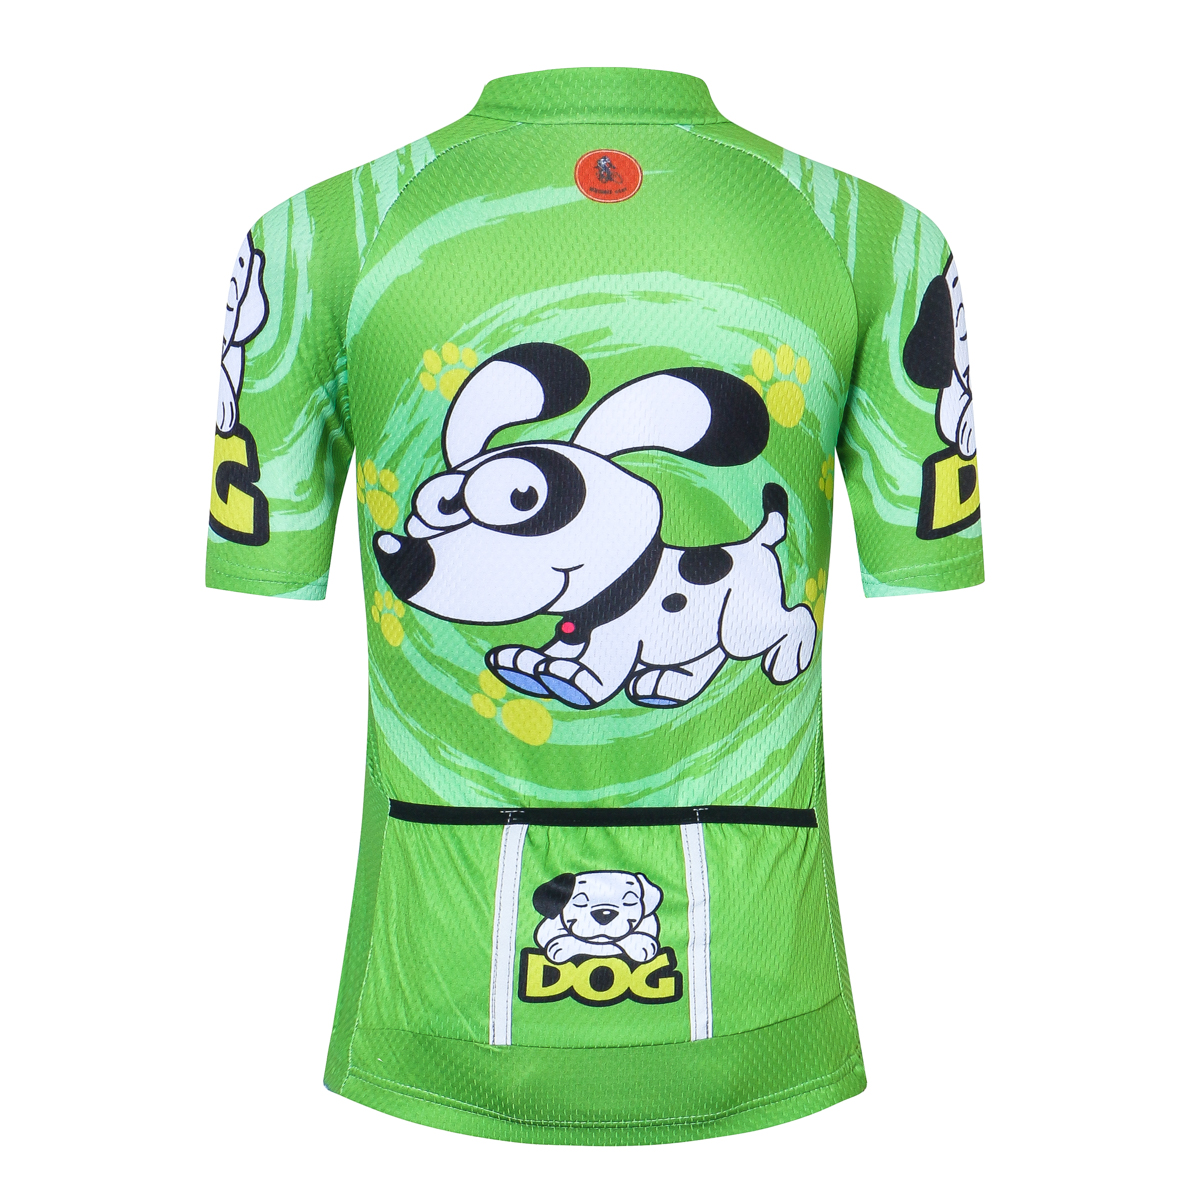 Weimostar Cyling Jersey Youth For Kids Boys Girls Reflective Bike ... 3d8d940df